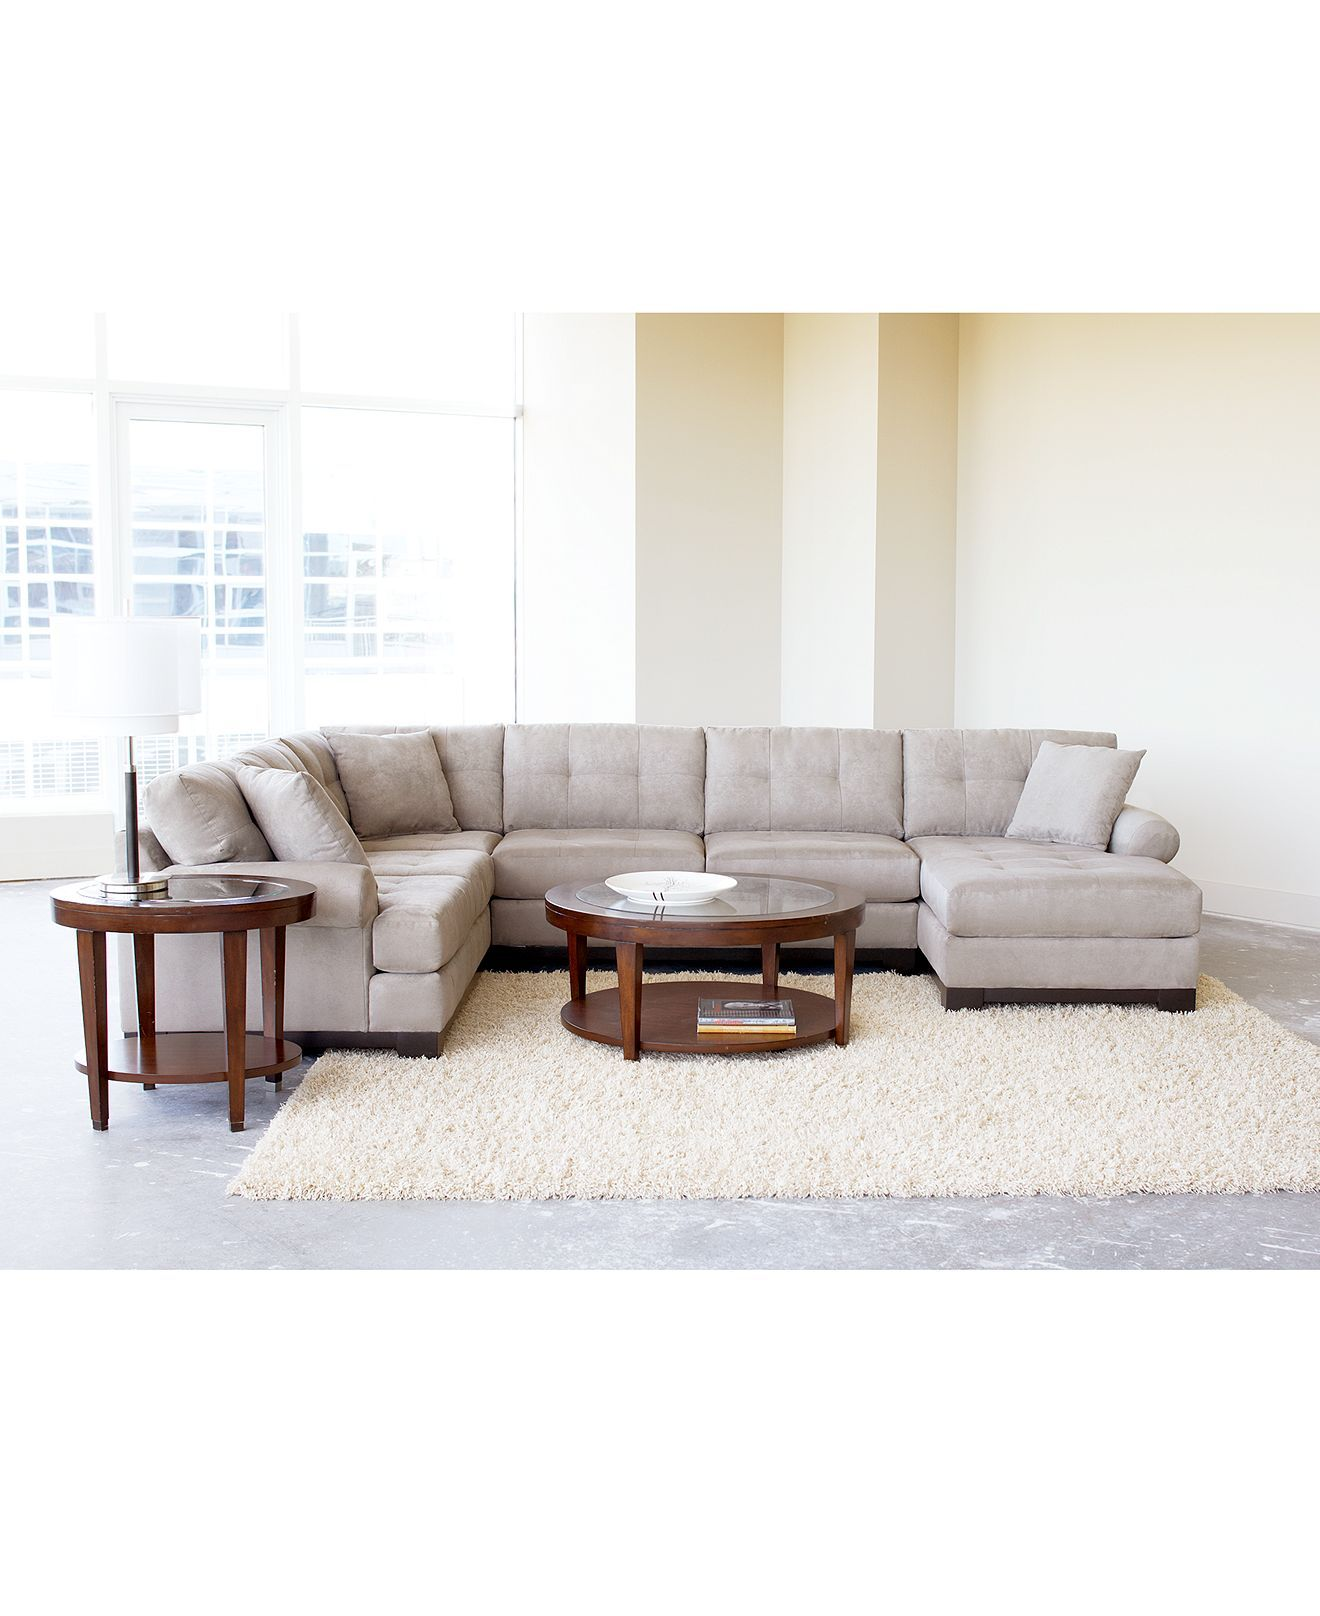 Evan Living Room Furniture Sets & Pieces - Sectionals - furniture ...